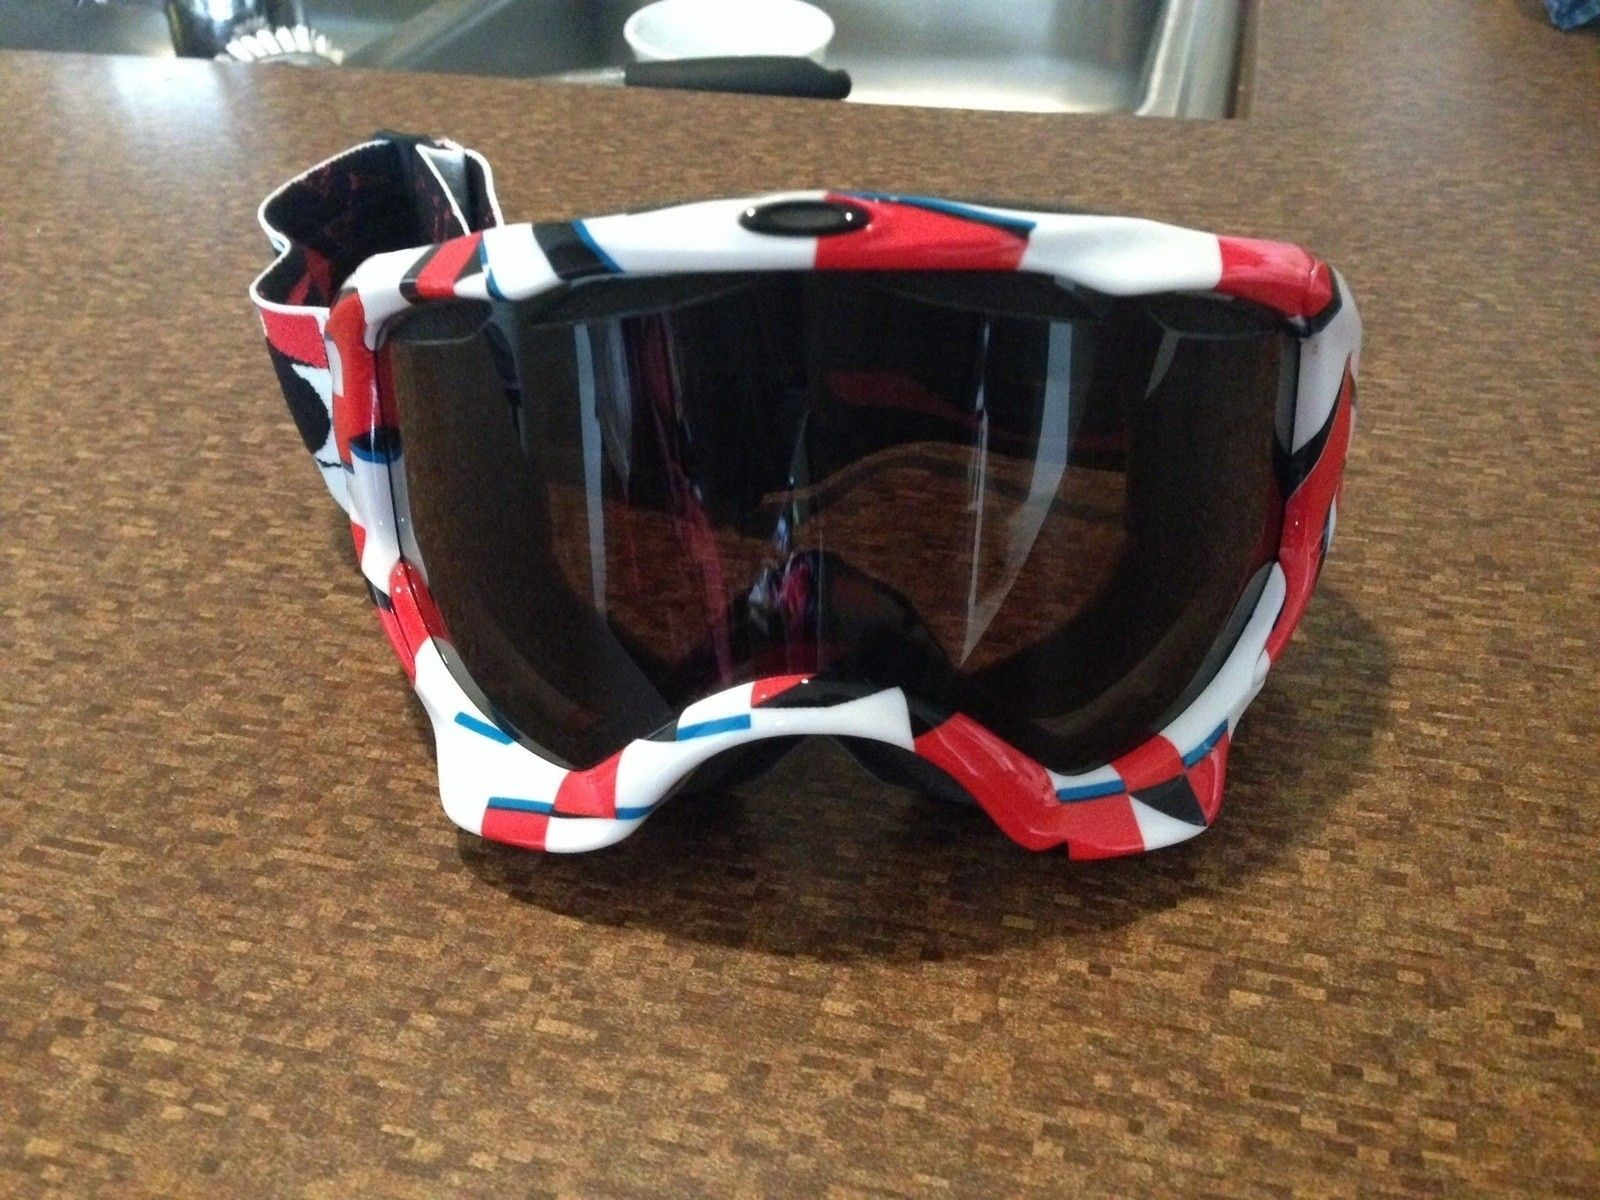 Can anyone help me identify what model of goggles these are? - image.jpg